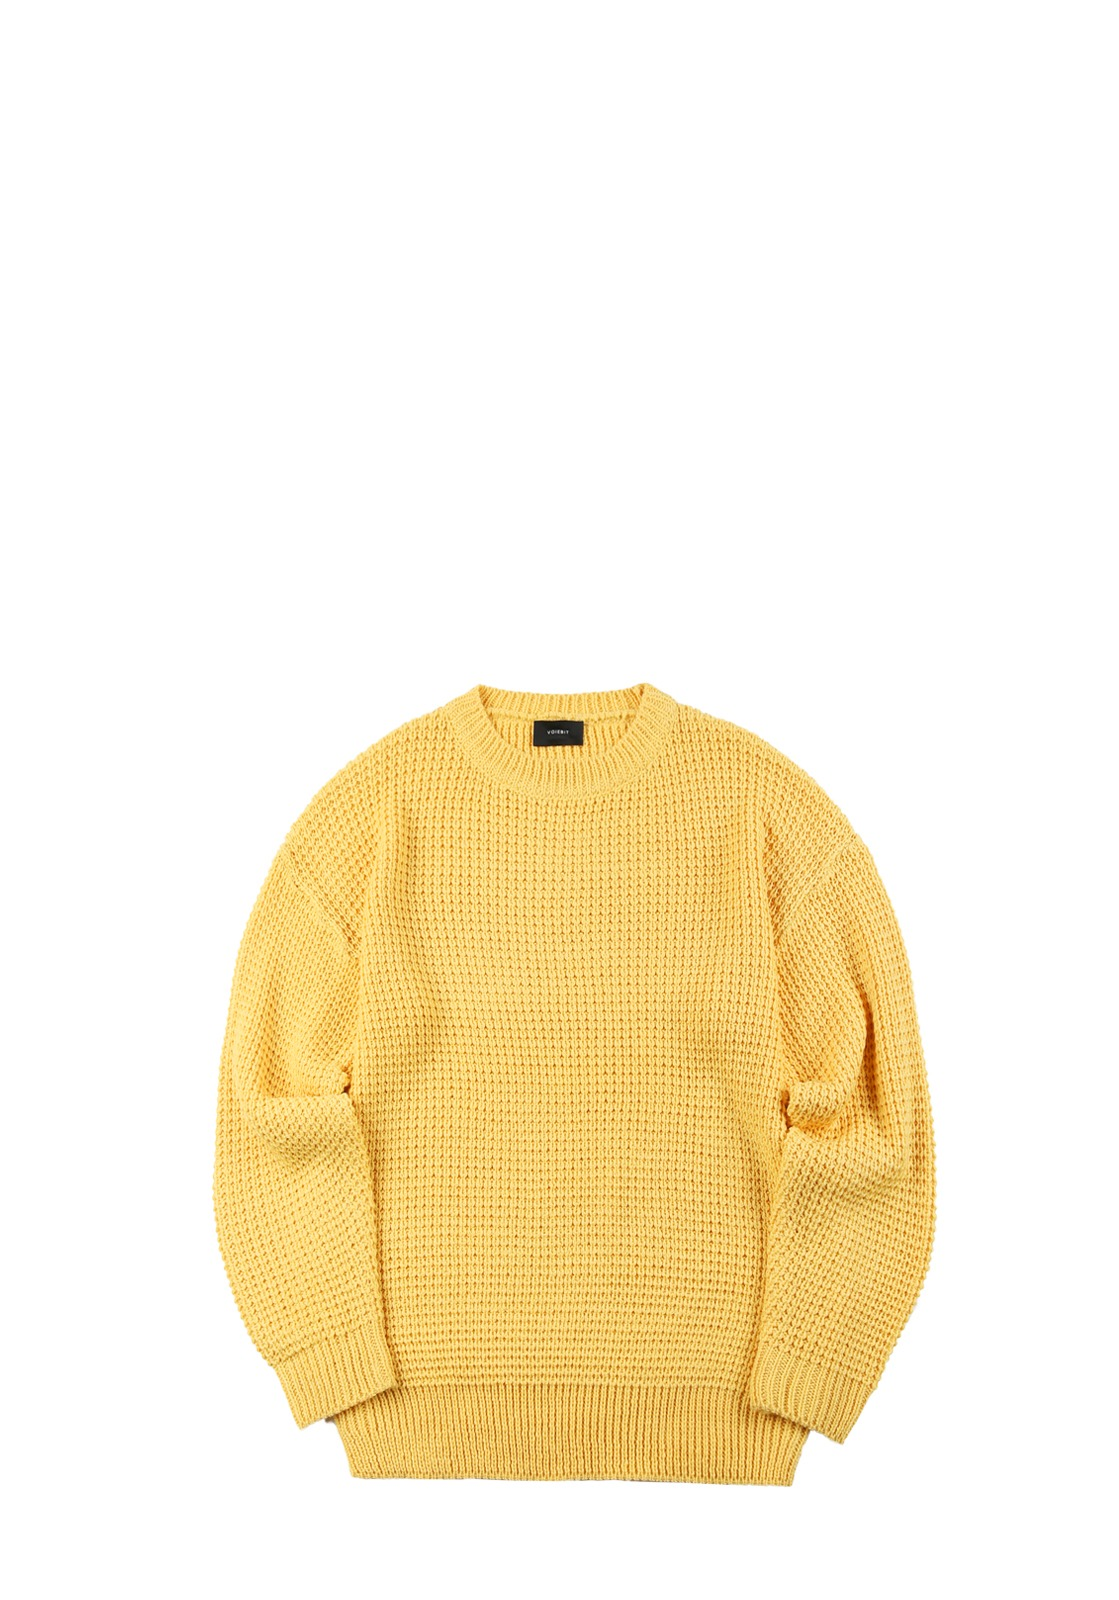 V551 WAFFLE OVERFIT ROUND KNIT  YELLOW